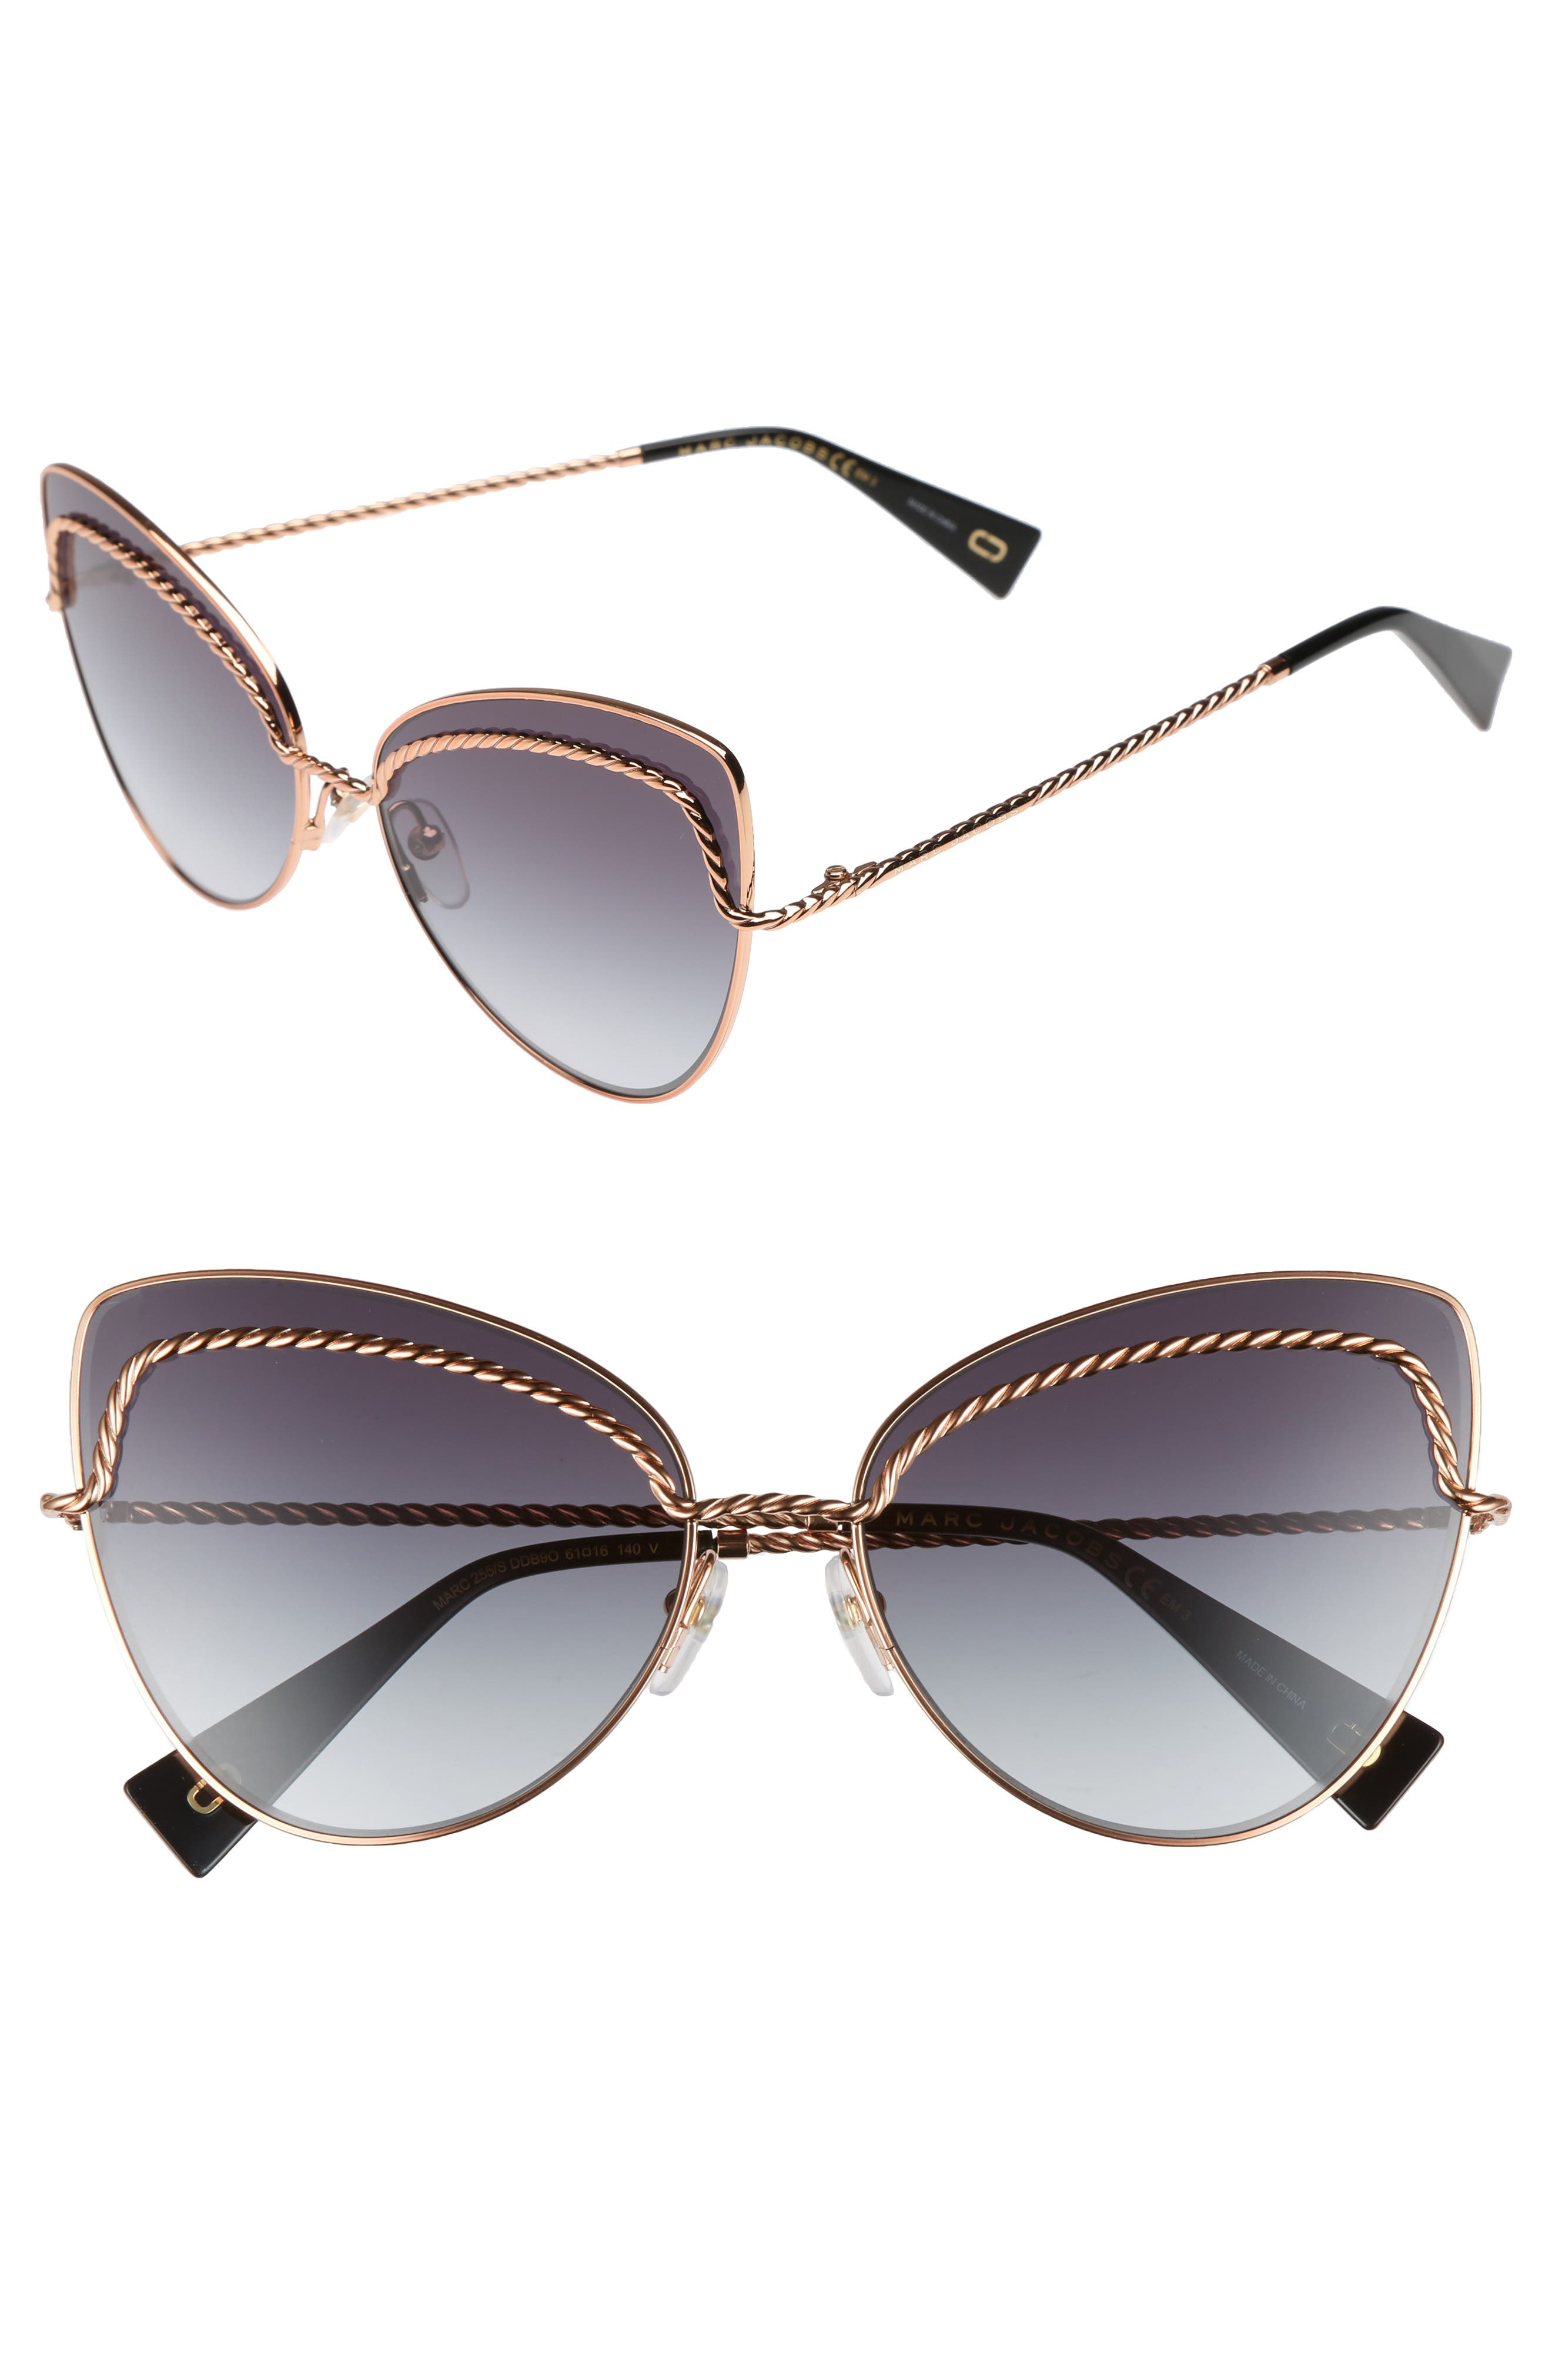 61mm Butterfly Sunglasses,                             Main thumbnail 1, color,